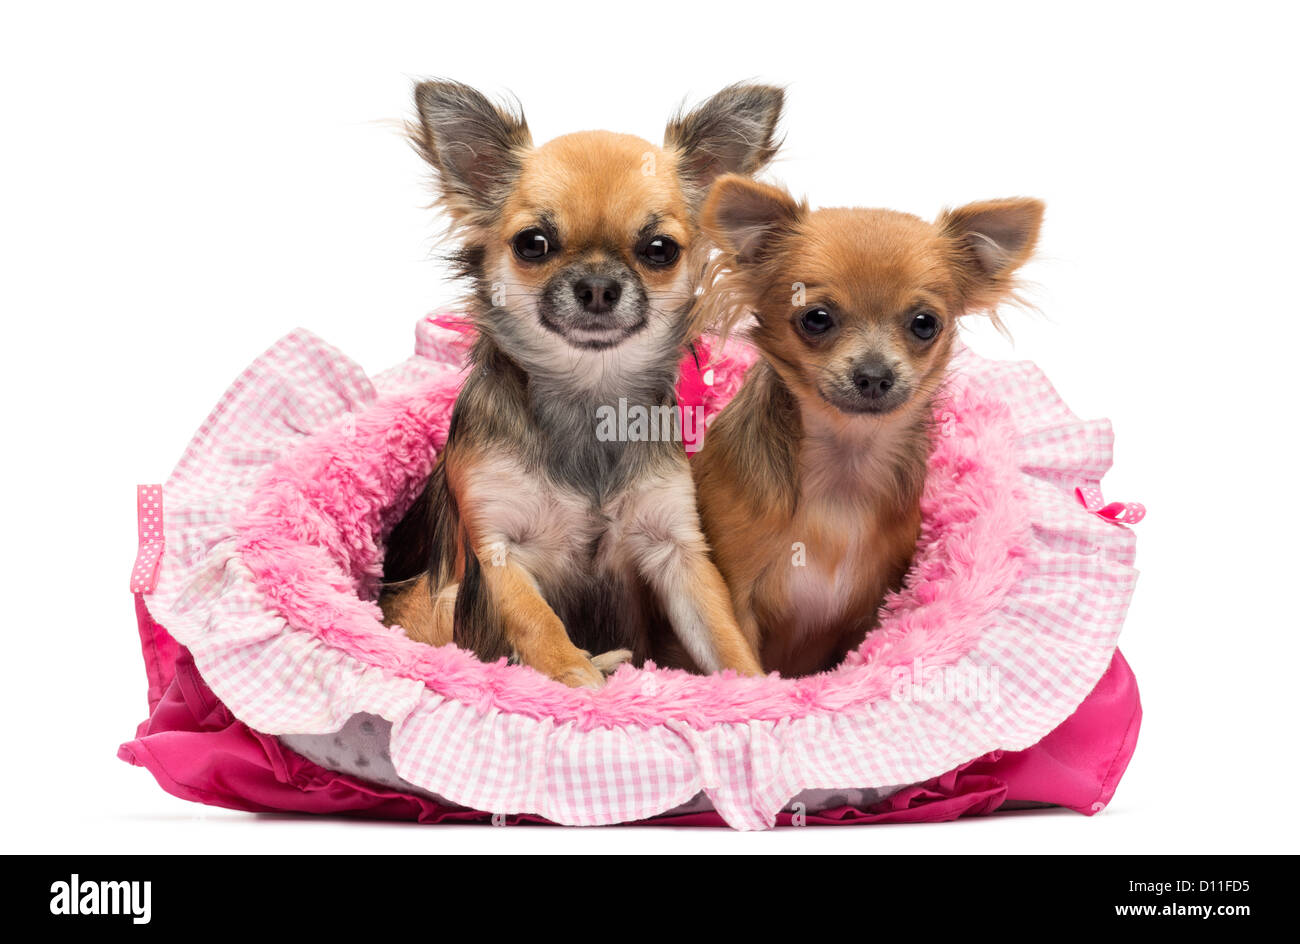 Chihuahuas sitting in a pink dog bed against white background - Stock Image